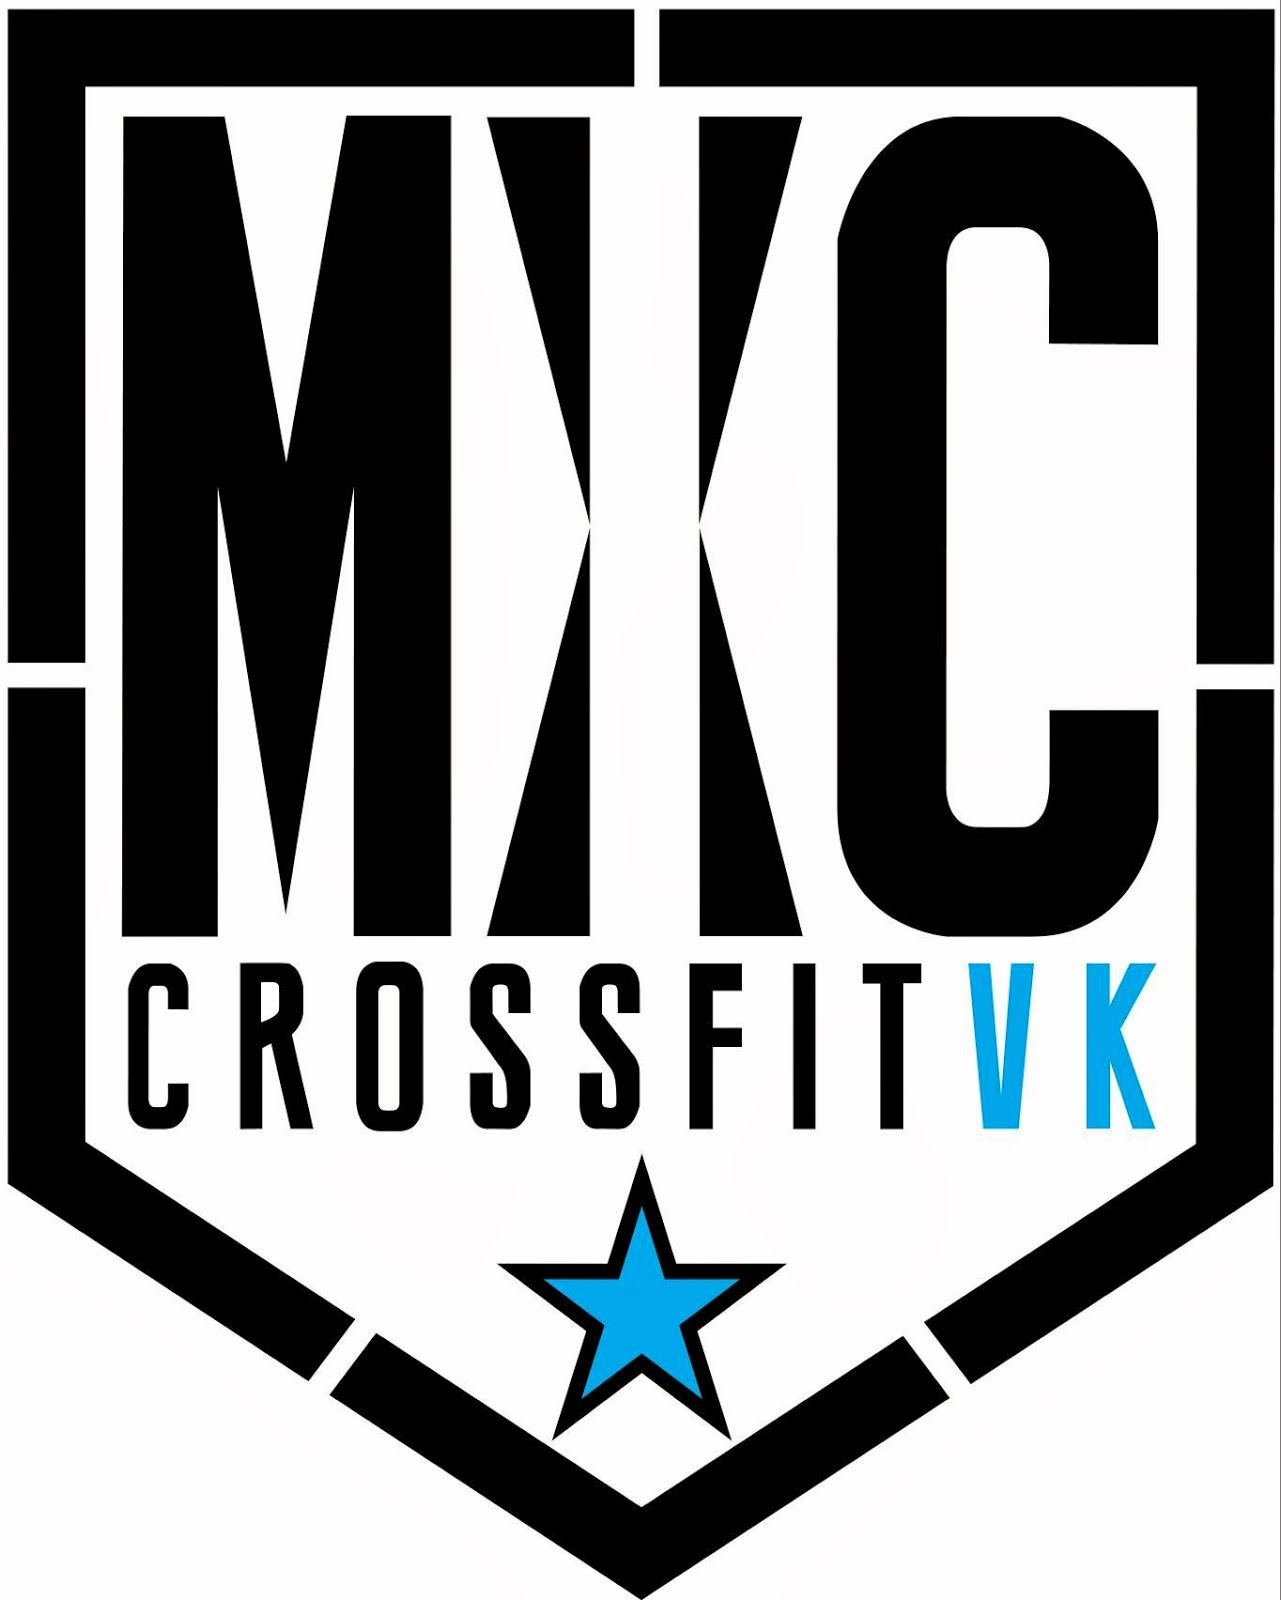 MXCOACH CROSSFIT